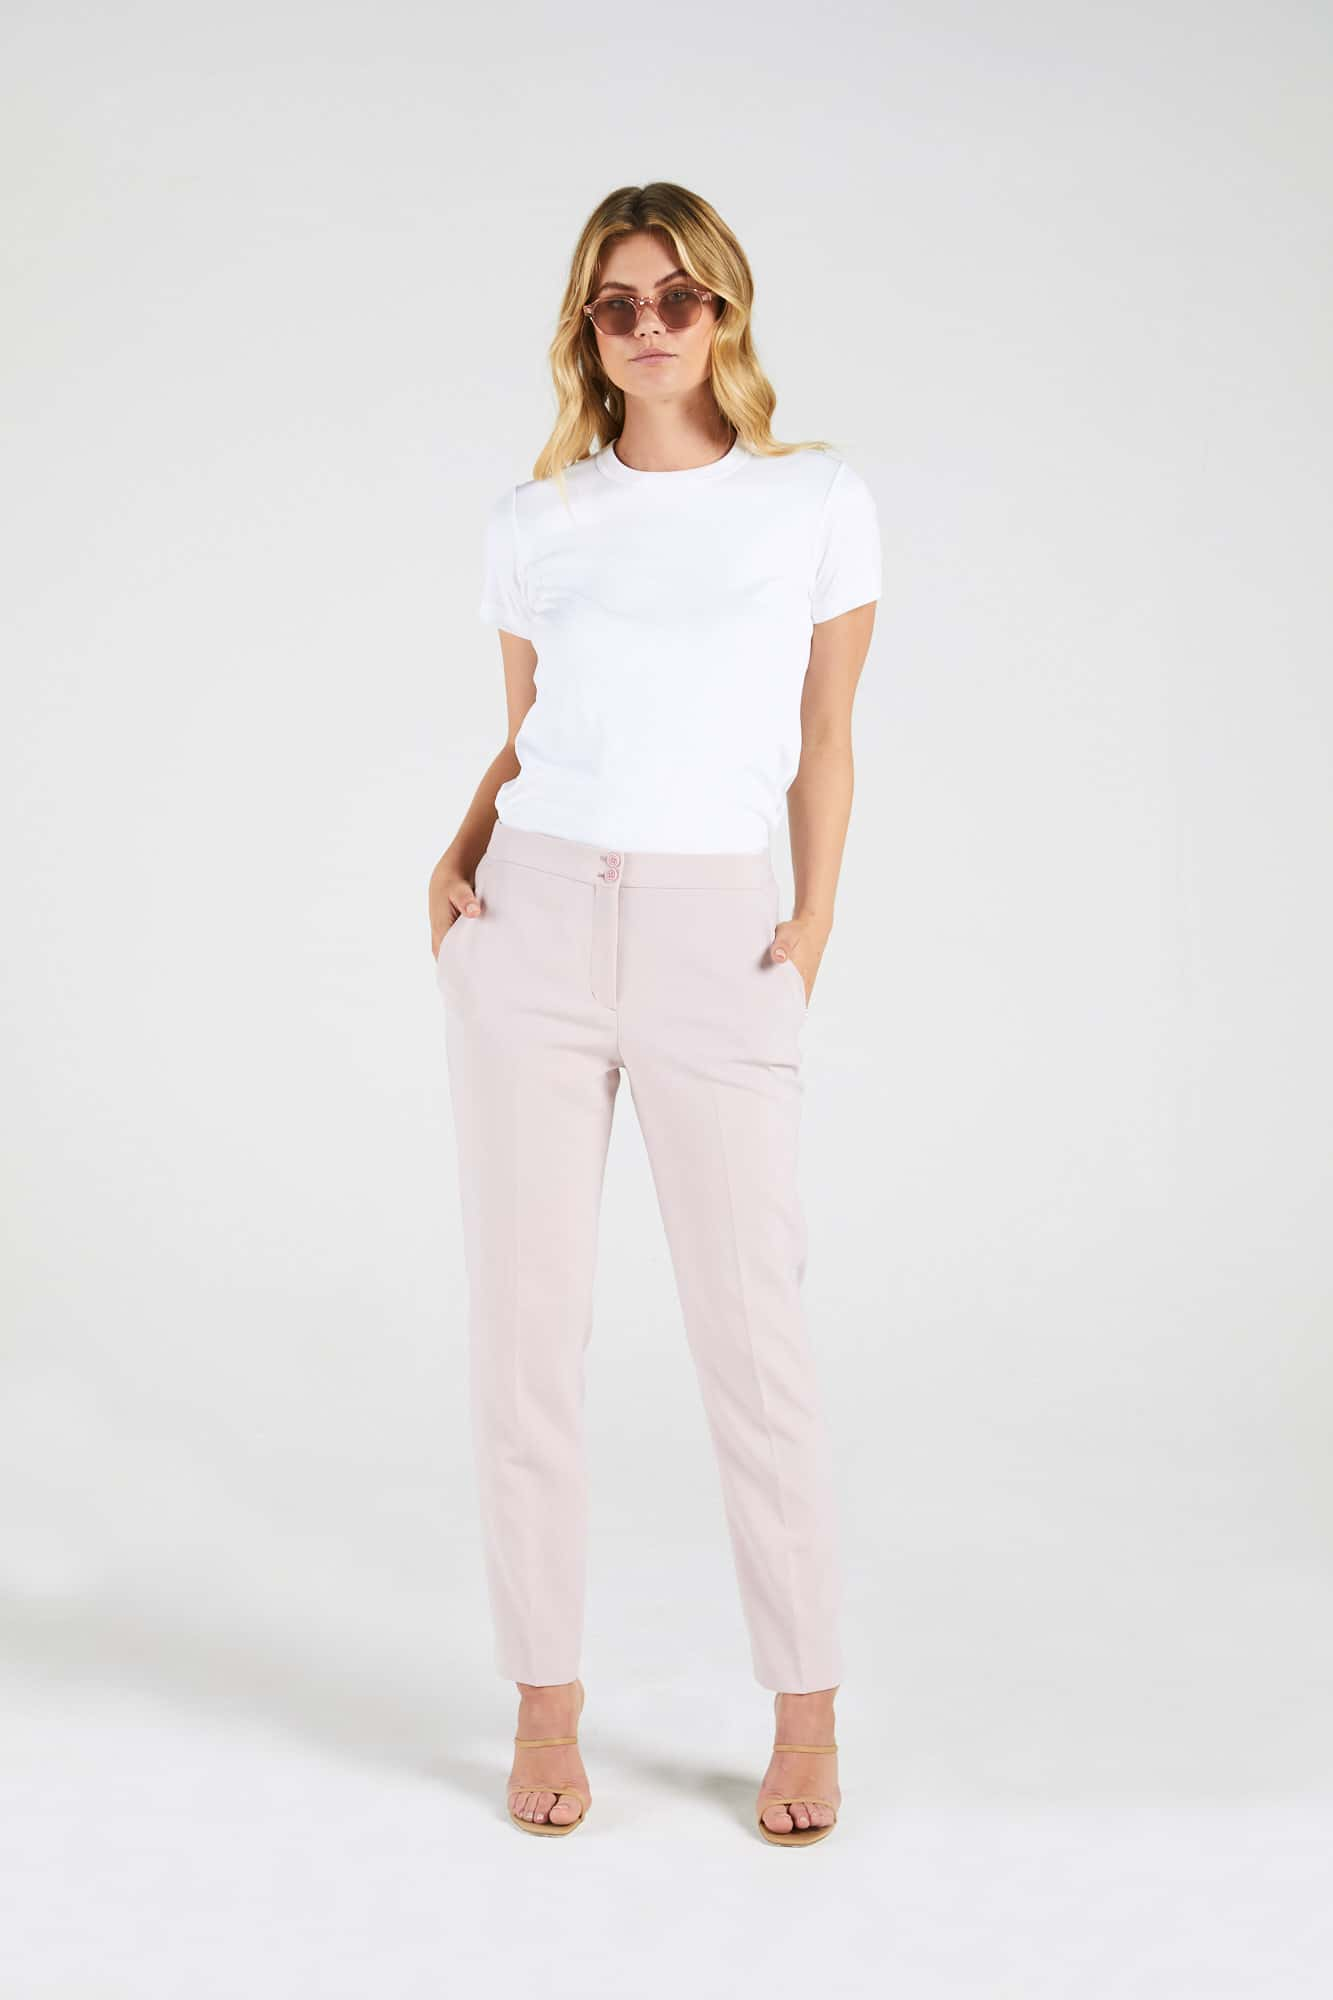 InStitchu Collection The Gorham Pastel Pink Pants